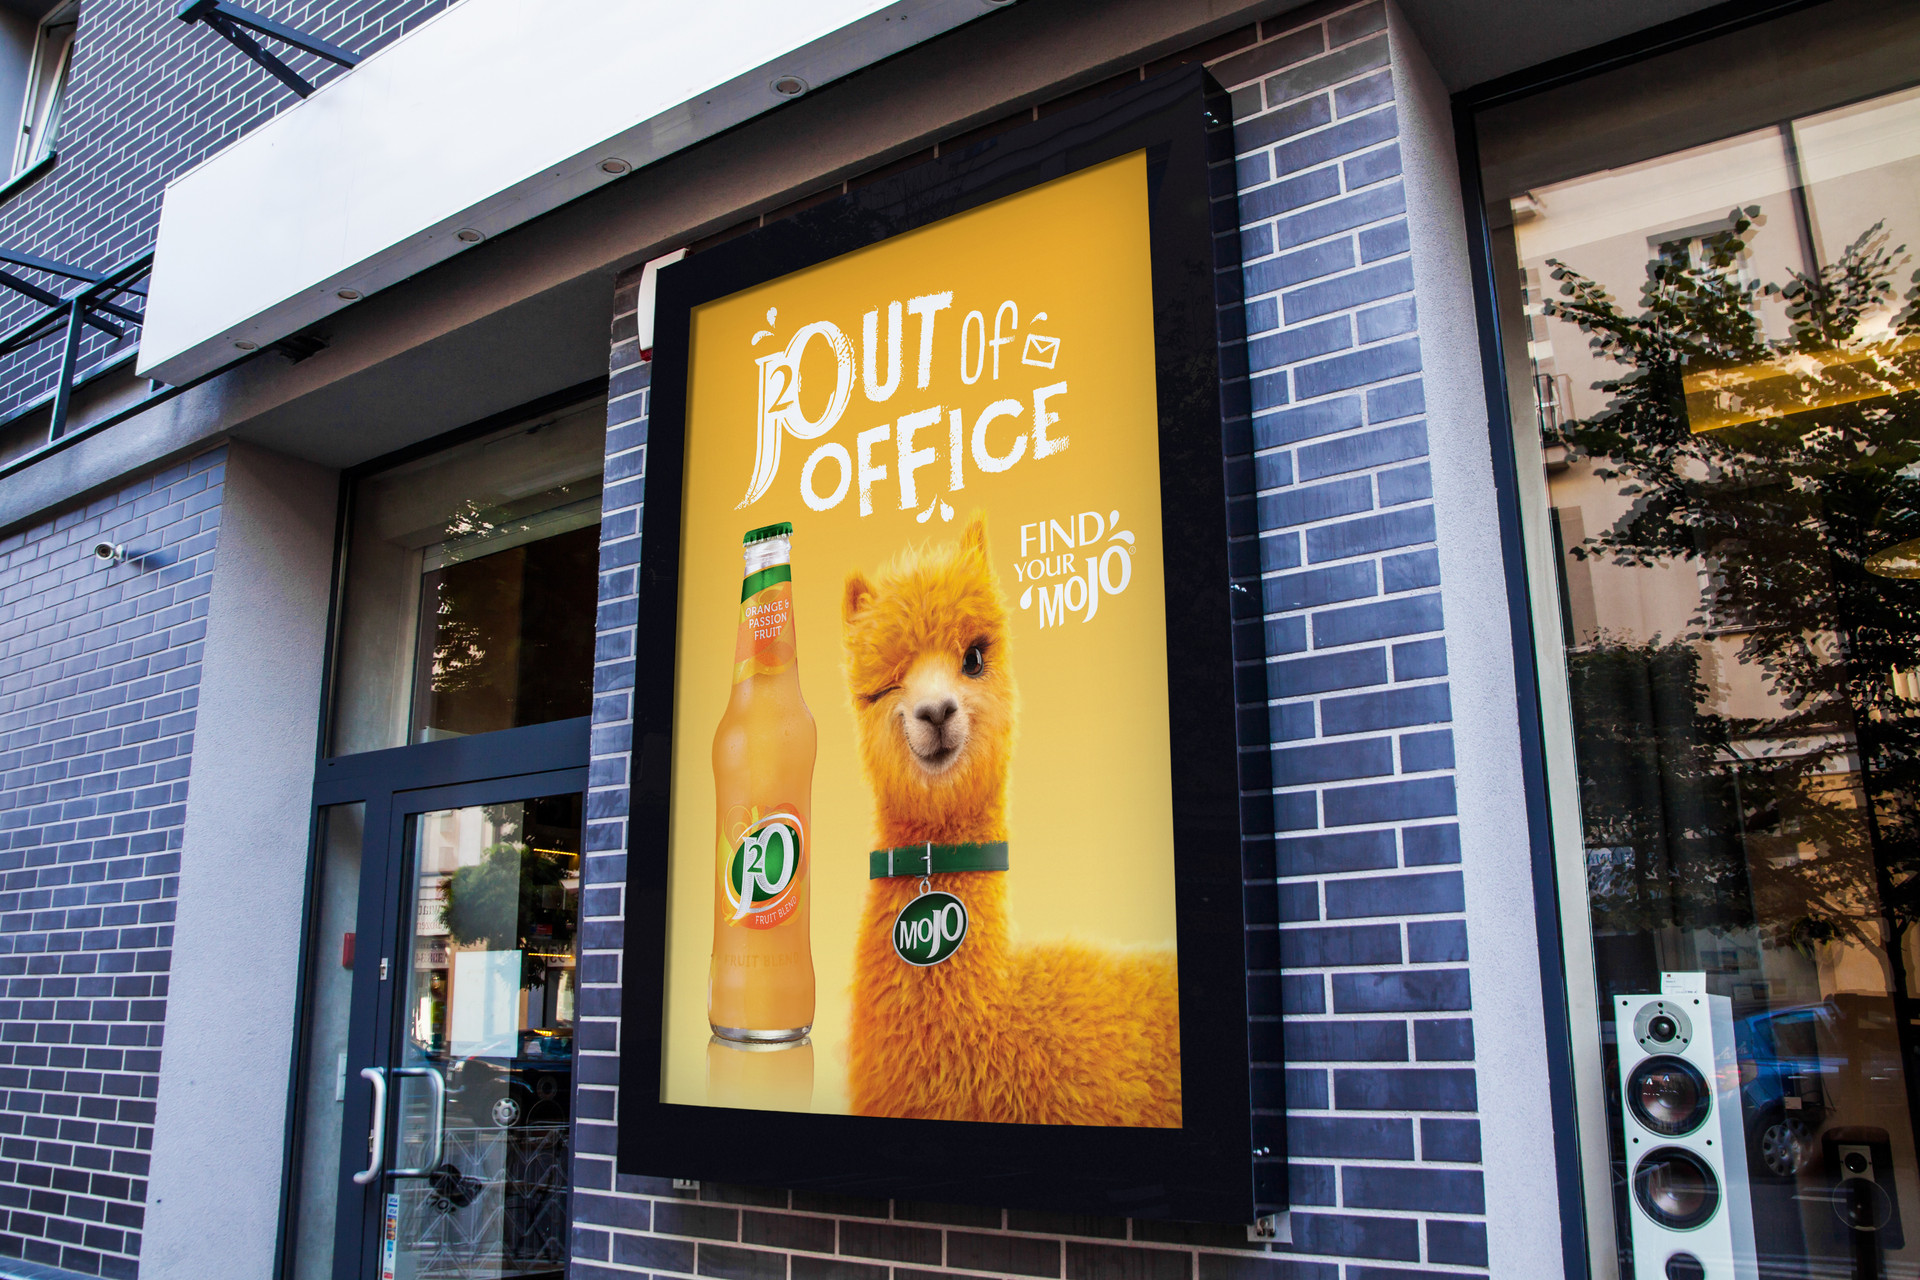 Outdoor-Ad-Screen-MockUp_3.jpg